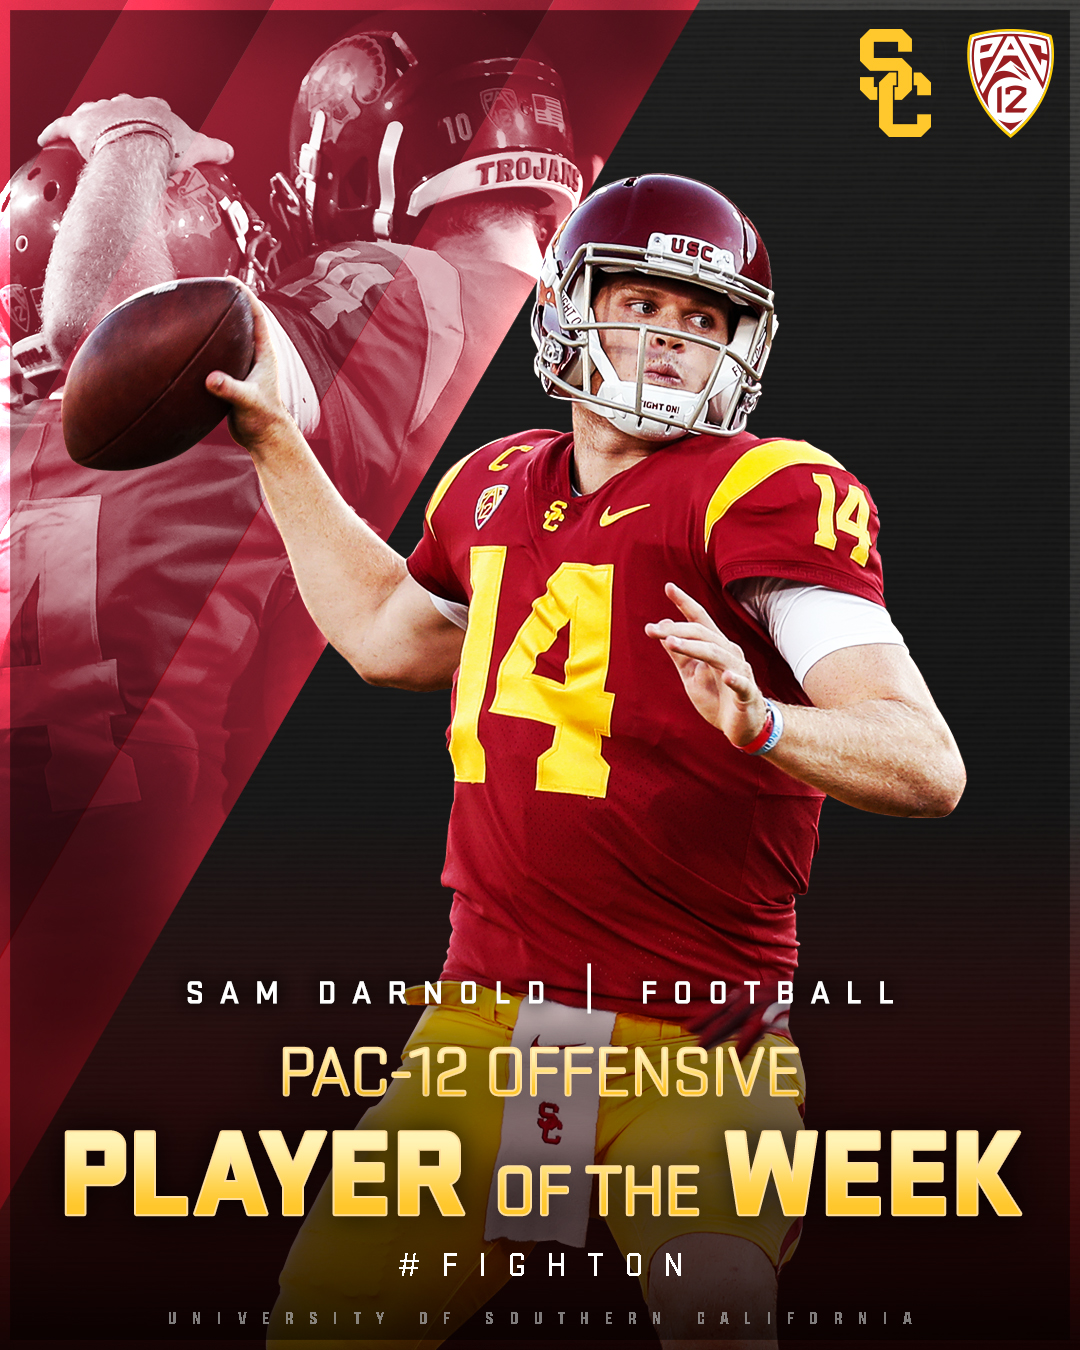 sam darnold usc football jersey